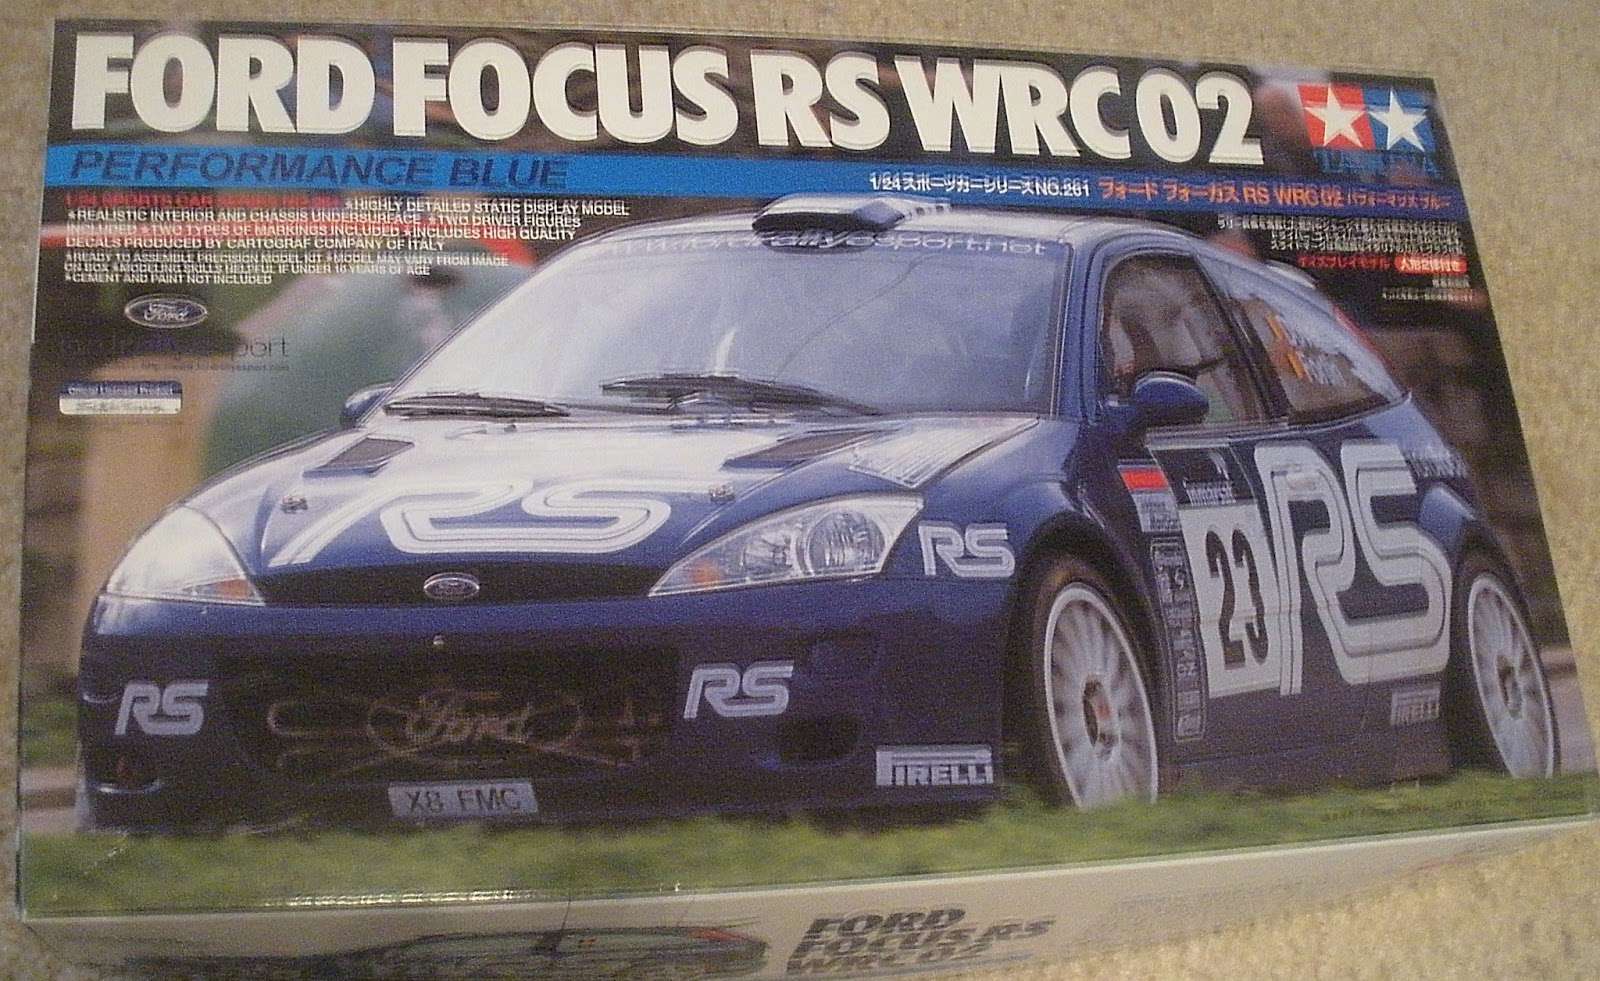 Dave S Modeling Bench Tamiya Ford Focus Rs Wrc 02